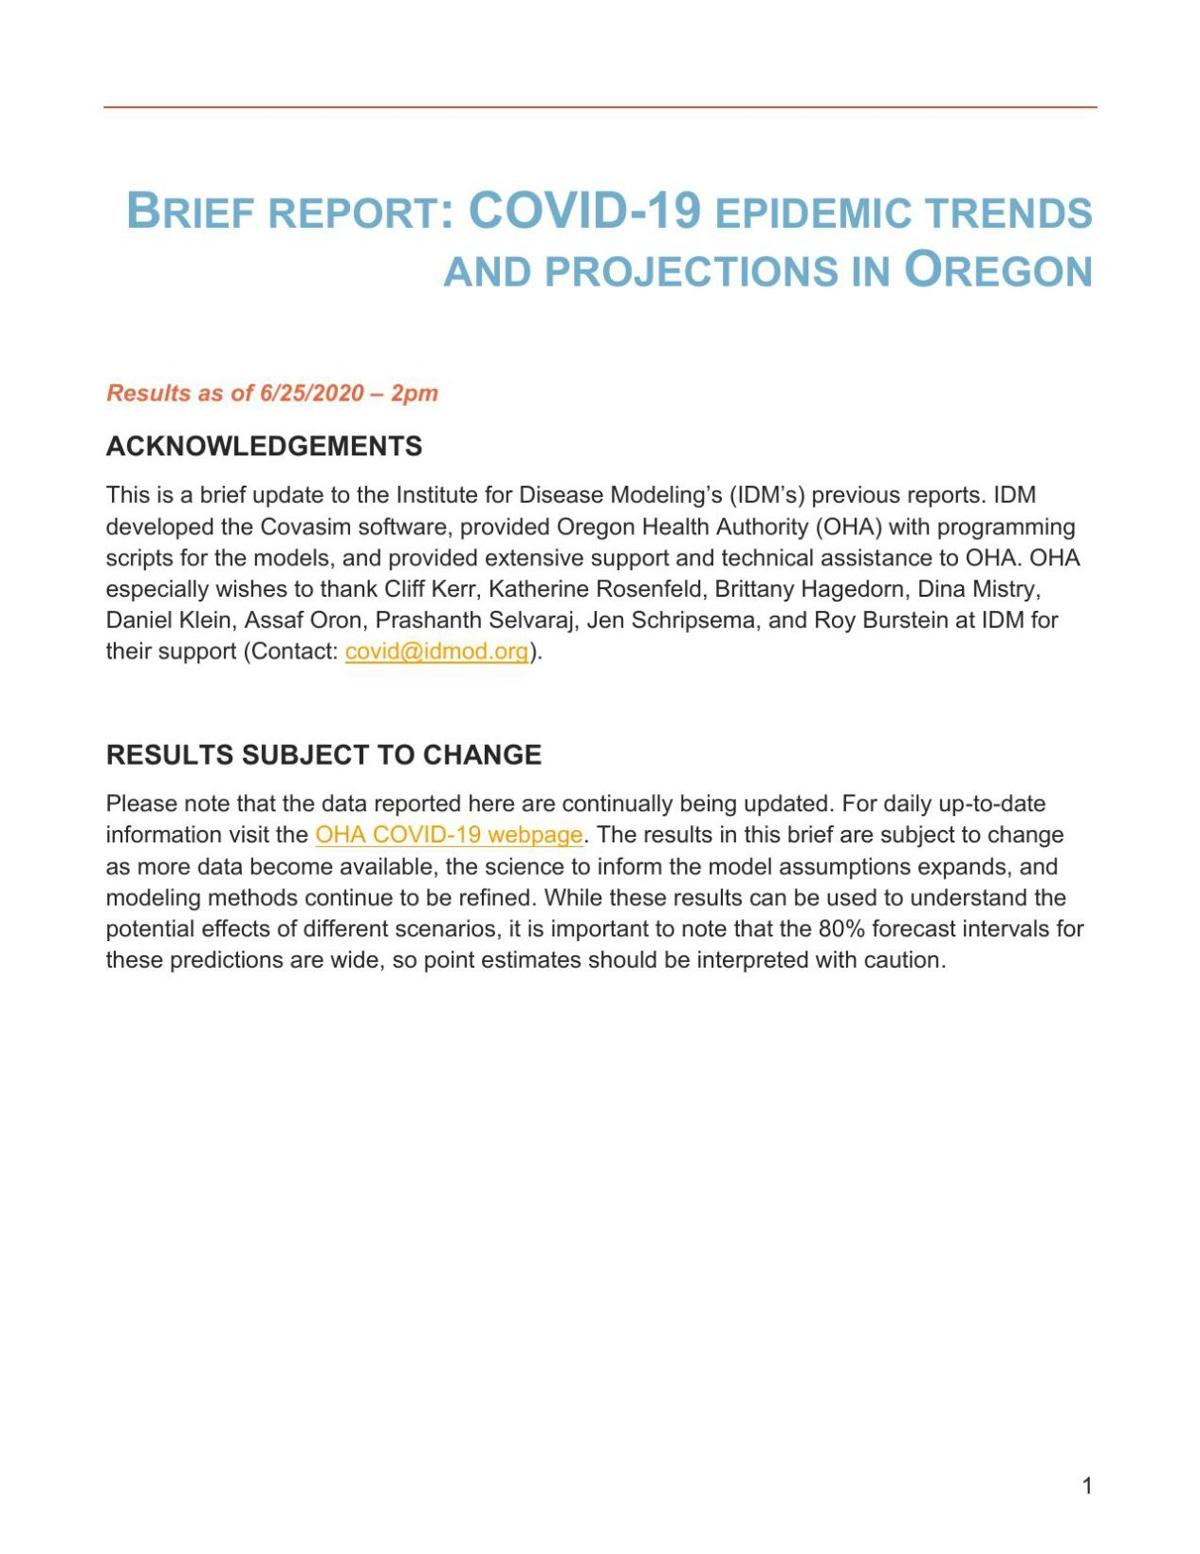 COVID-19 Case Projections